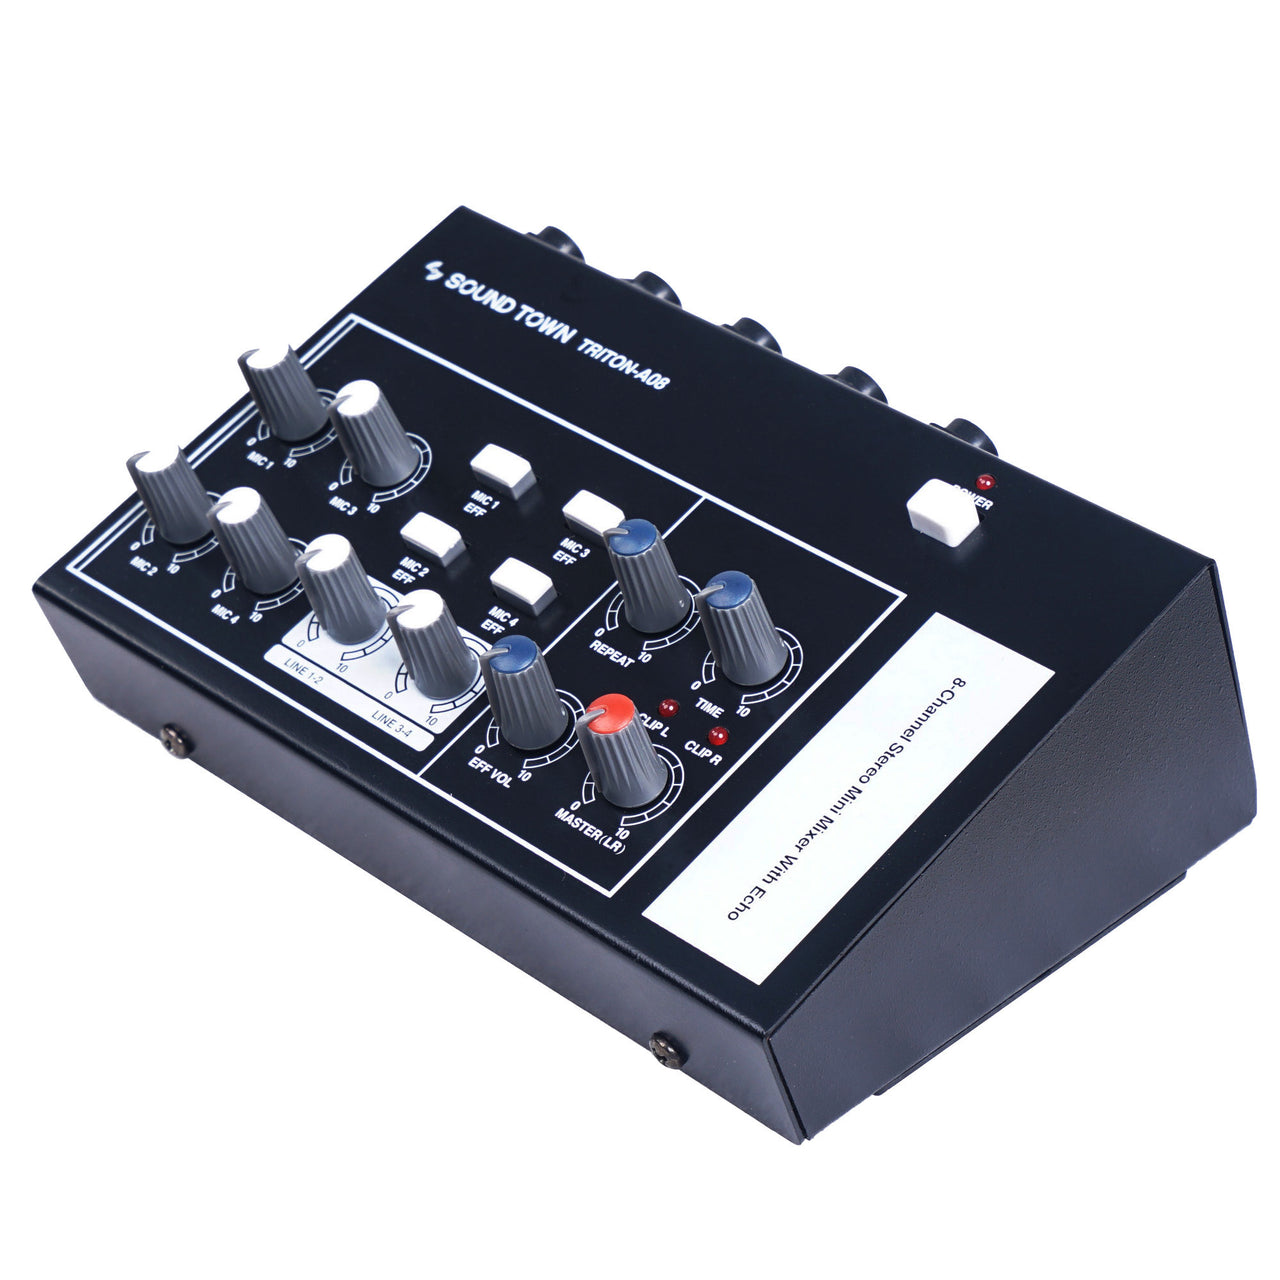 8 Channel Mono Stereo Karaoke Mini Mixer With 1 4 Inputs And Outputs